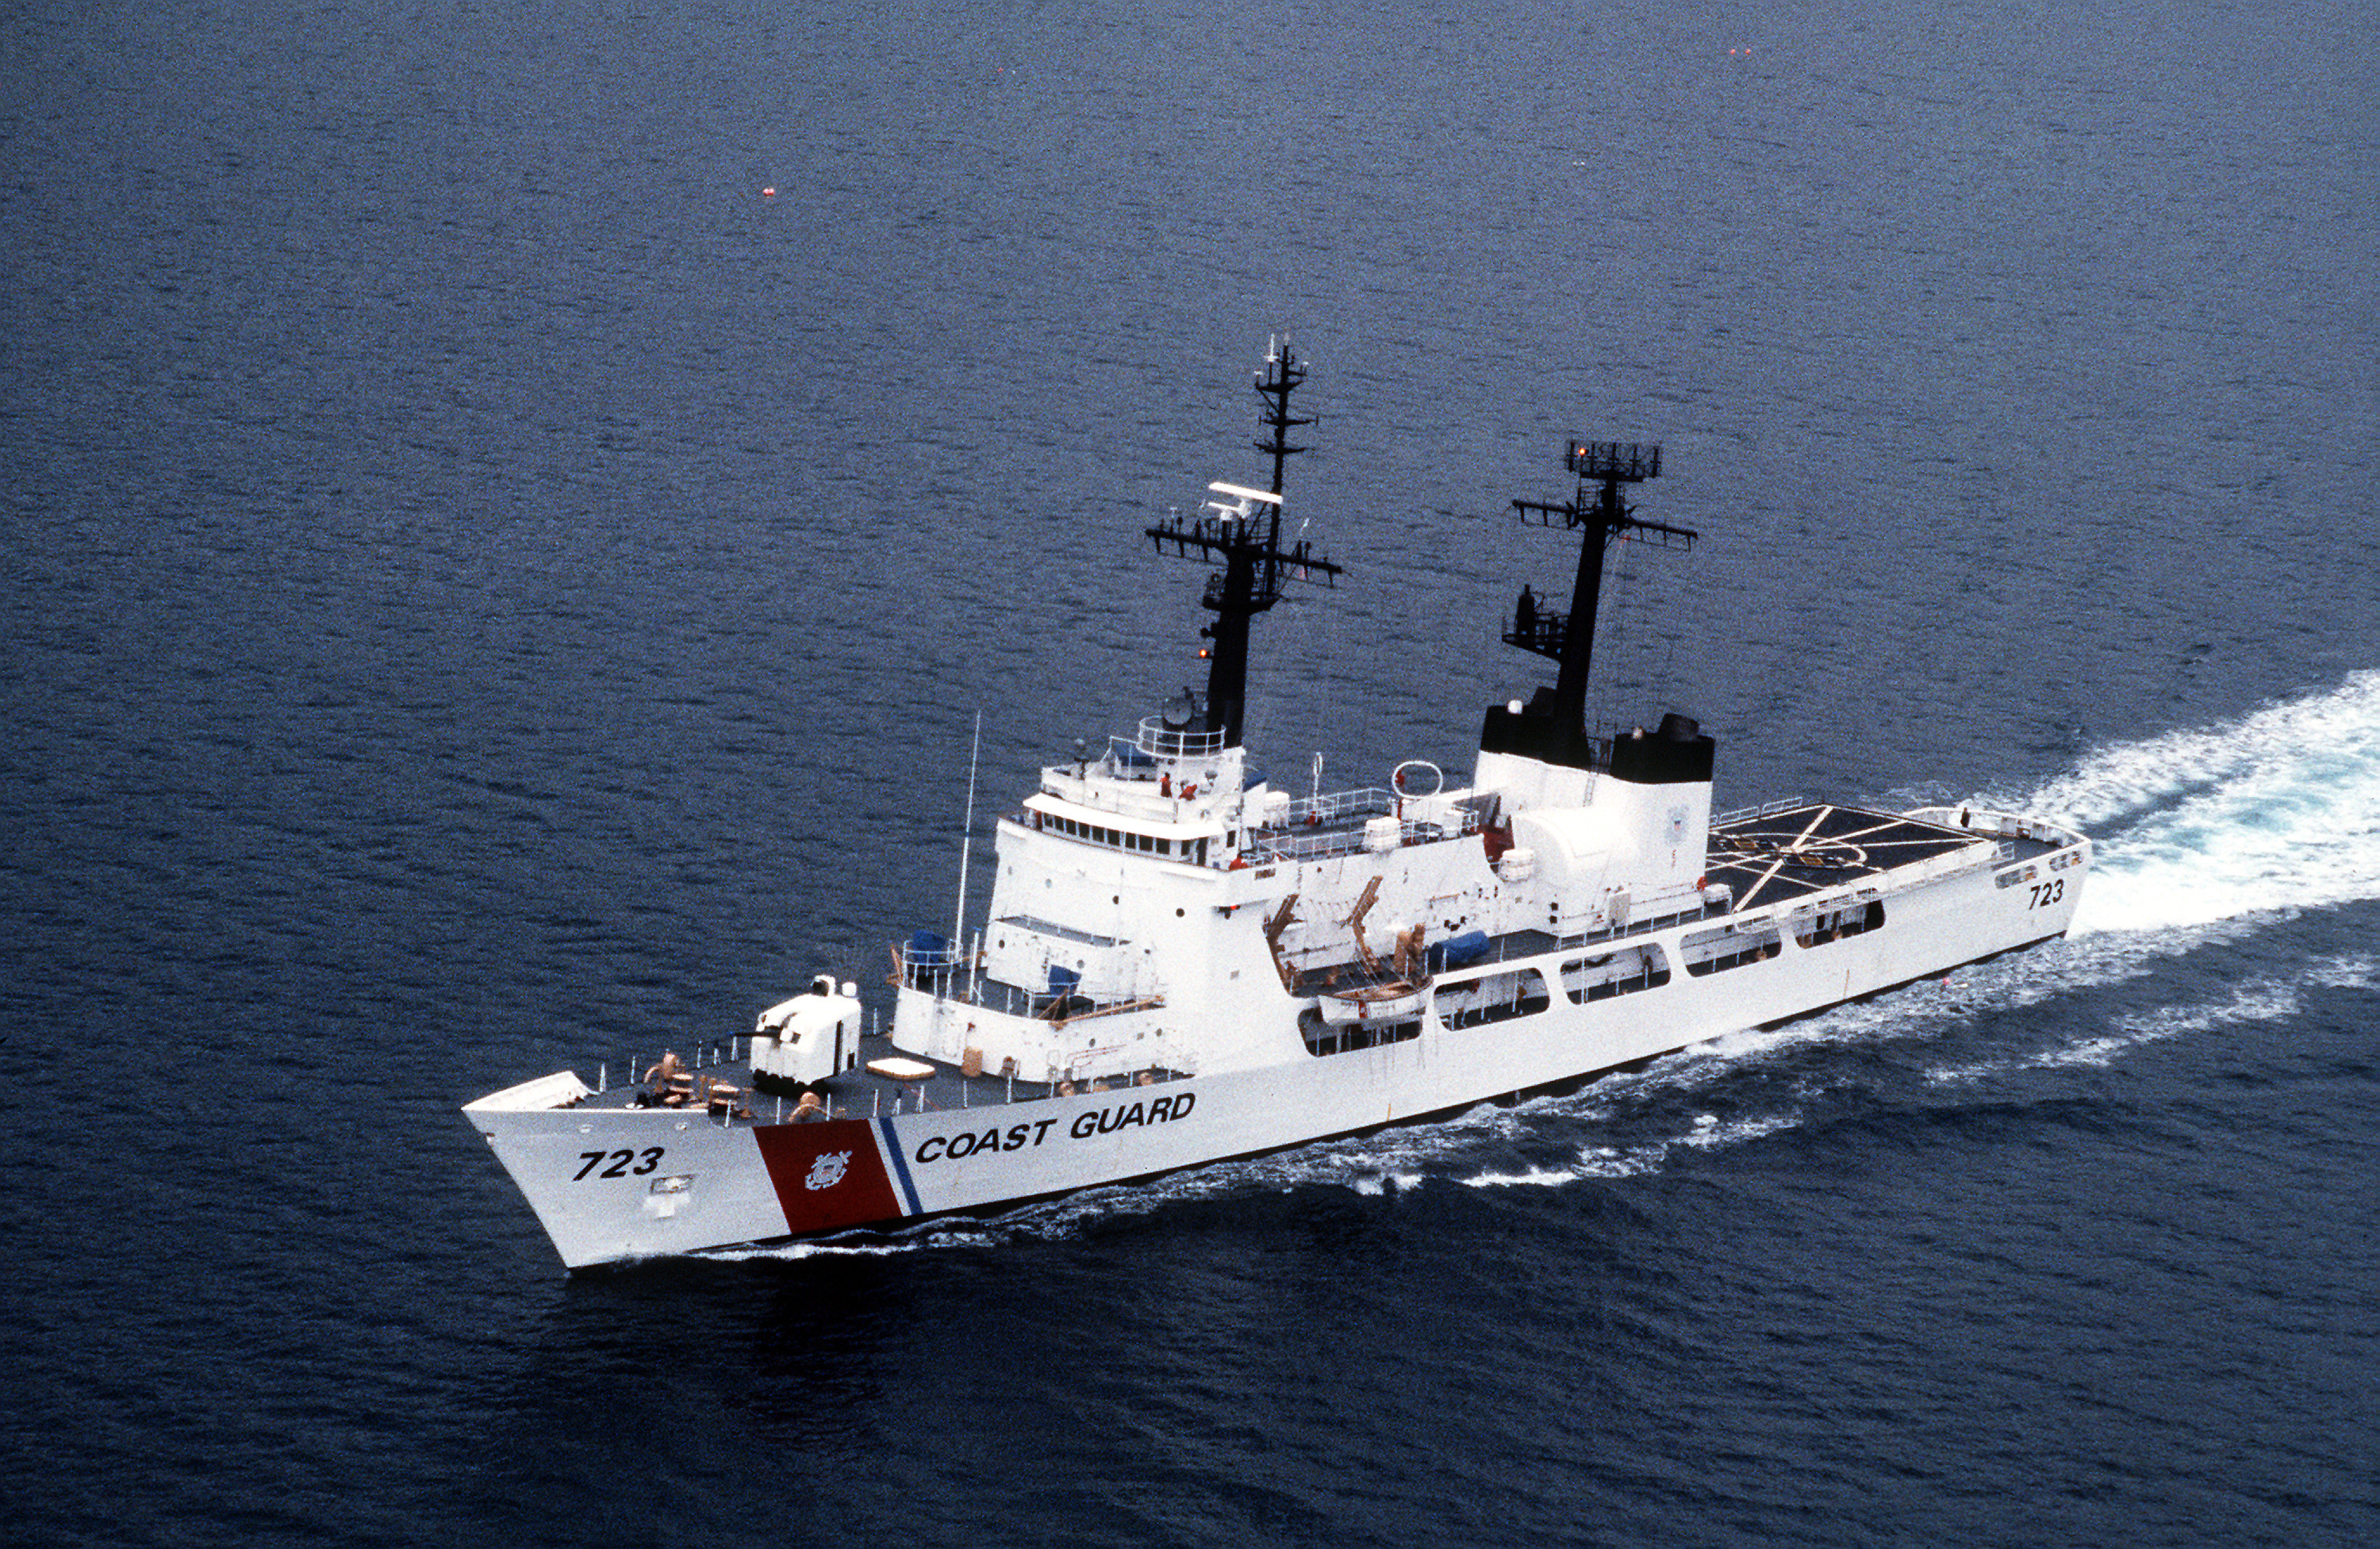 https://i0.wp.com/upload.wikimedia.org/wikipedia/commons/2/23/USCGC_Rush_WHEC-723.jpg